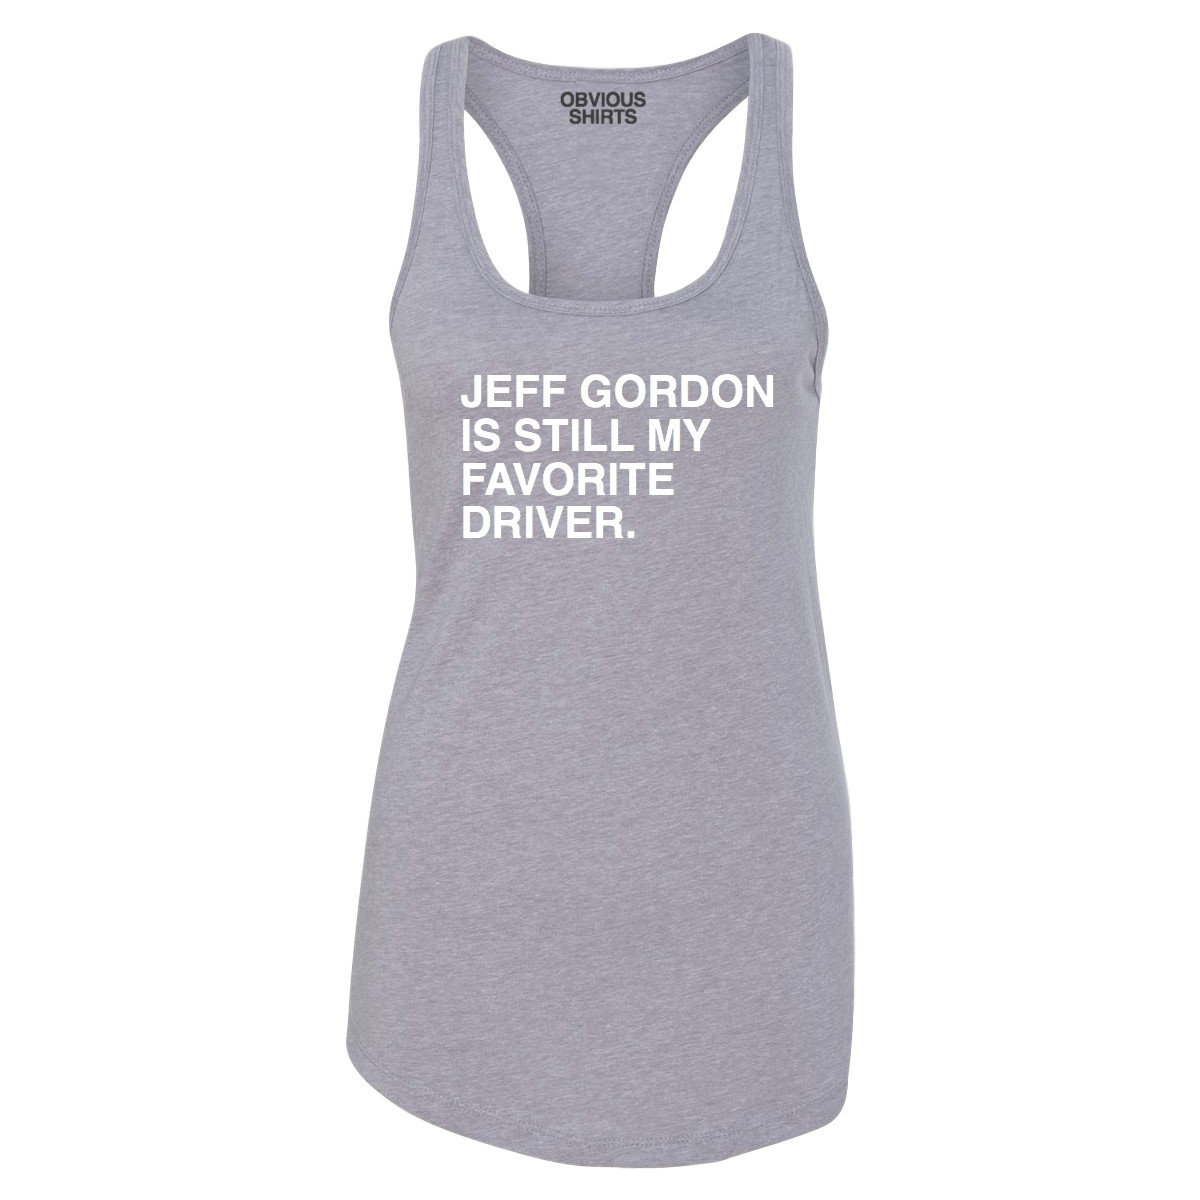 Jeff Gordon Is Still My Favorite Driver Obvious Shirts Ladies Tank Top